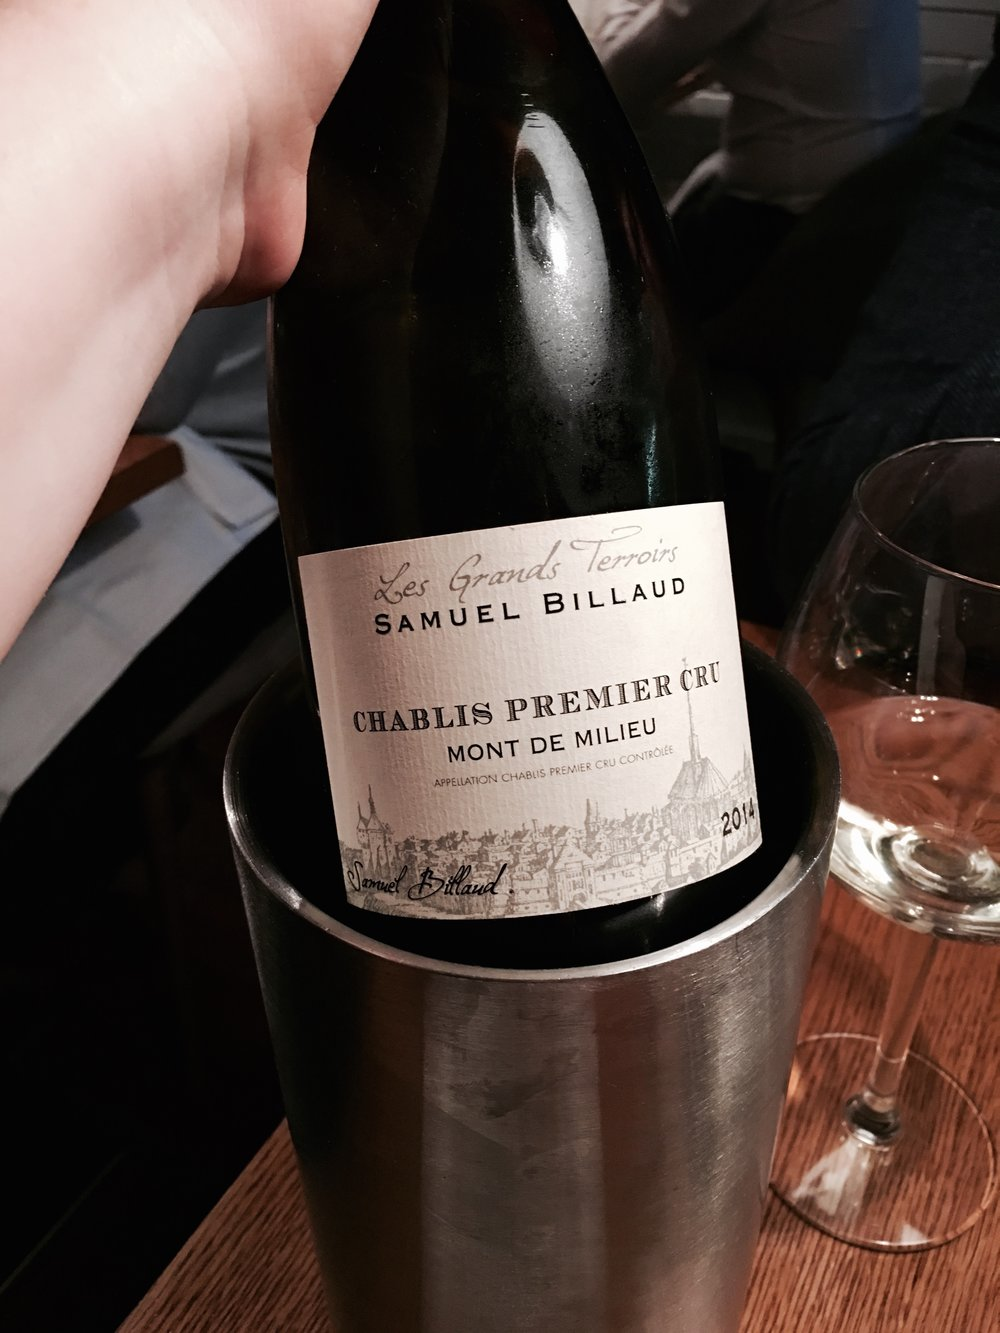 Delicious Premier Cru Chablis from the Premium Wine menu.